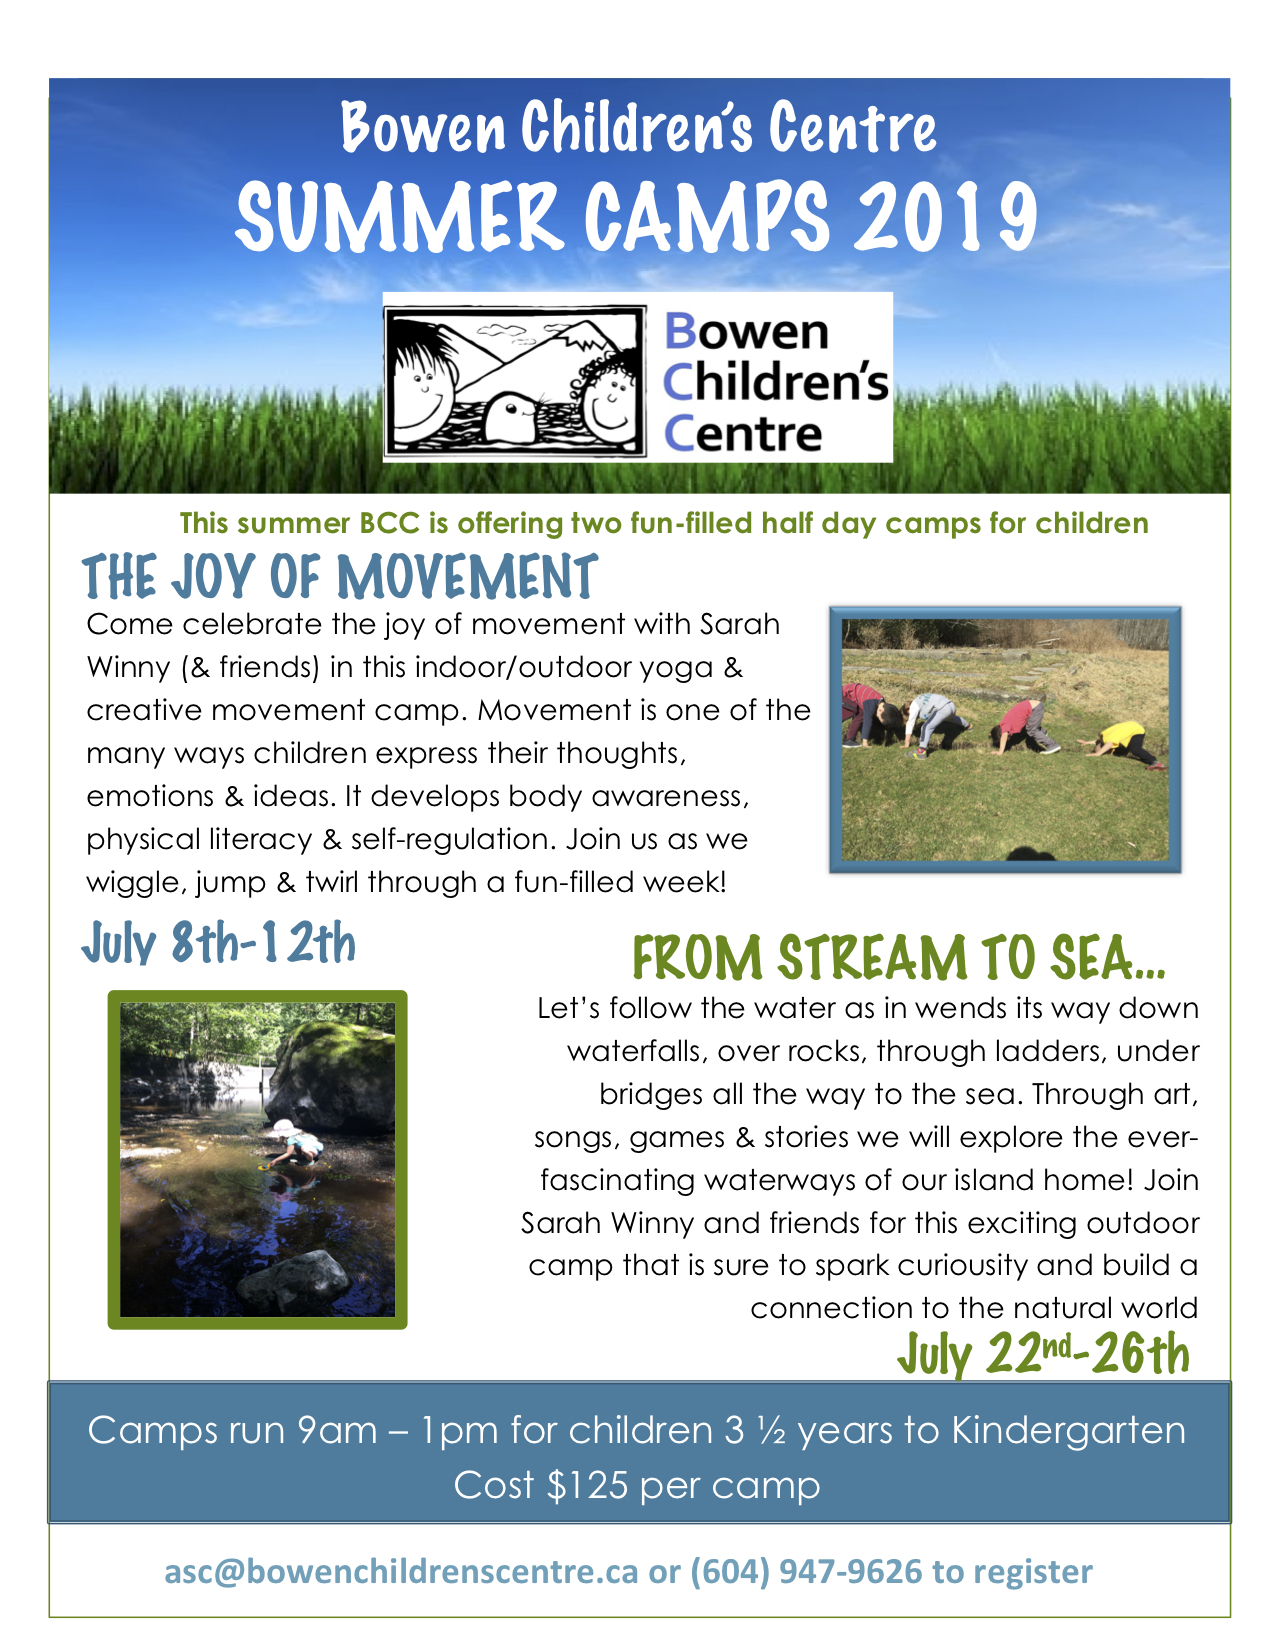 It's time to sign up for Summer camps!